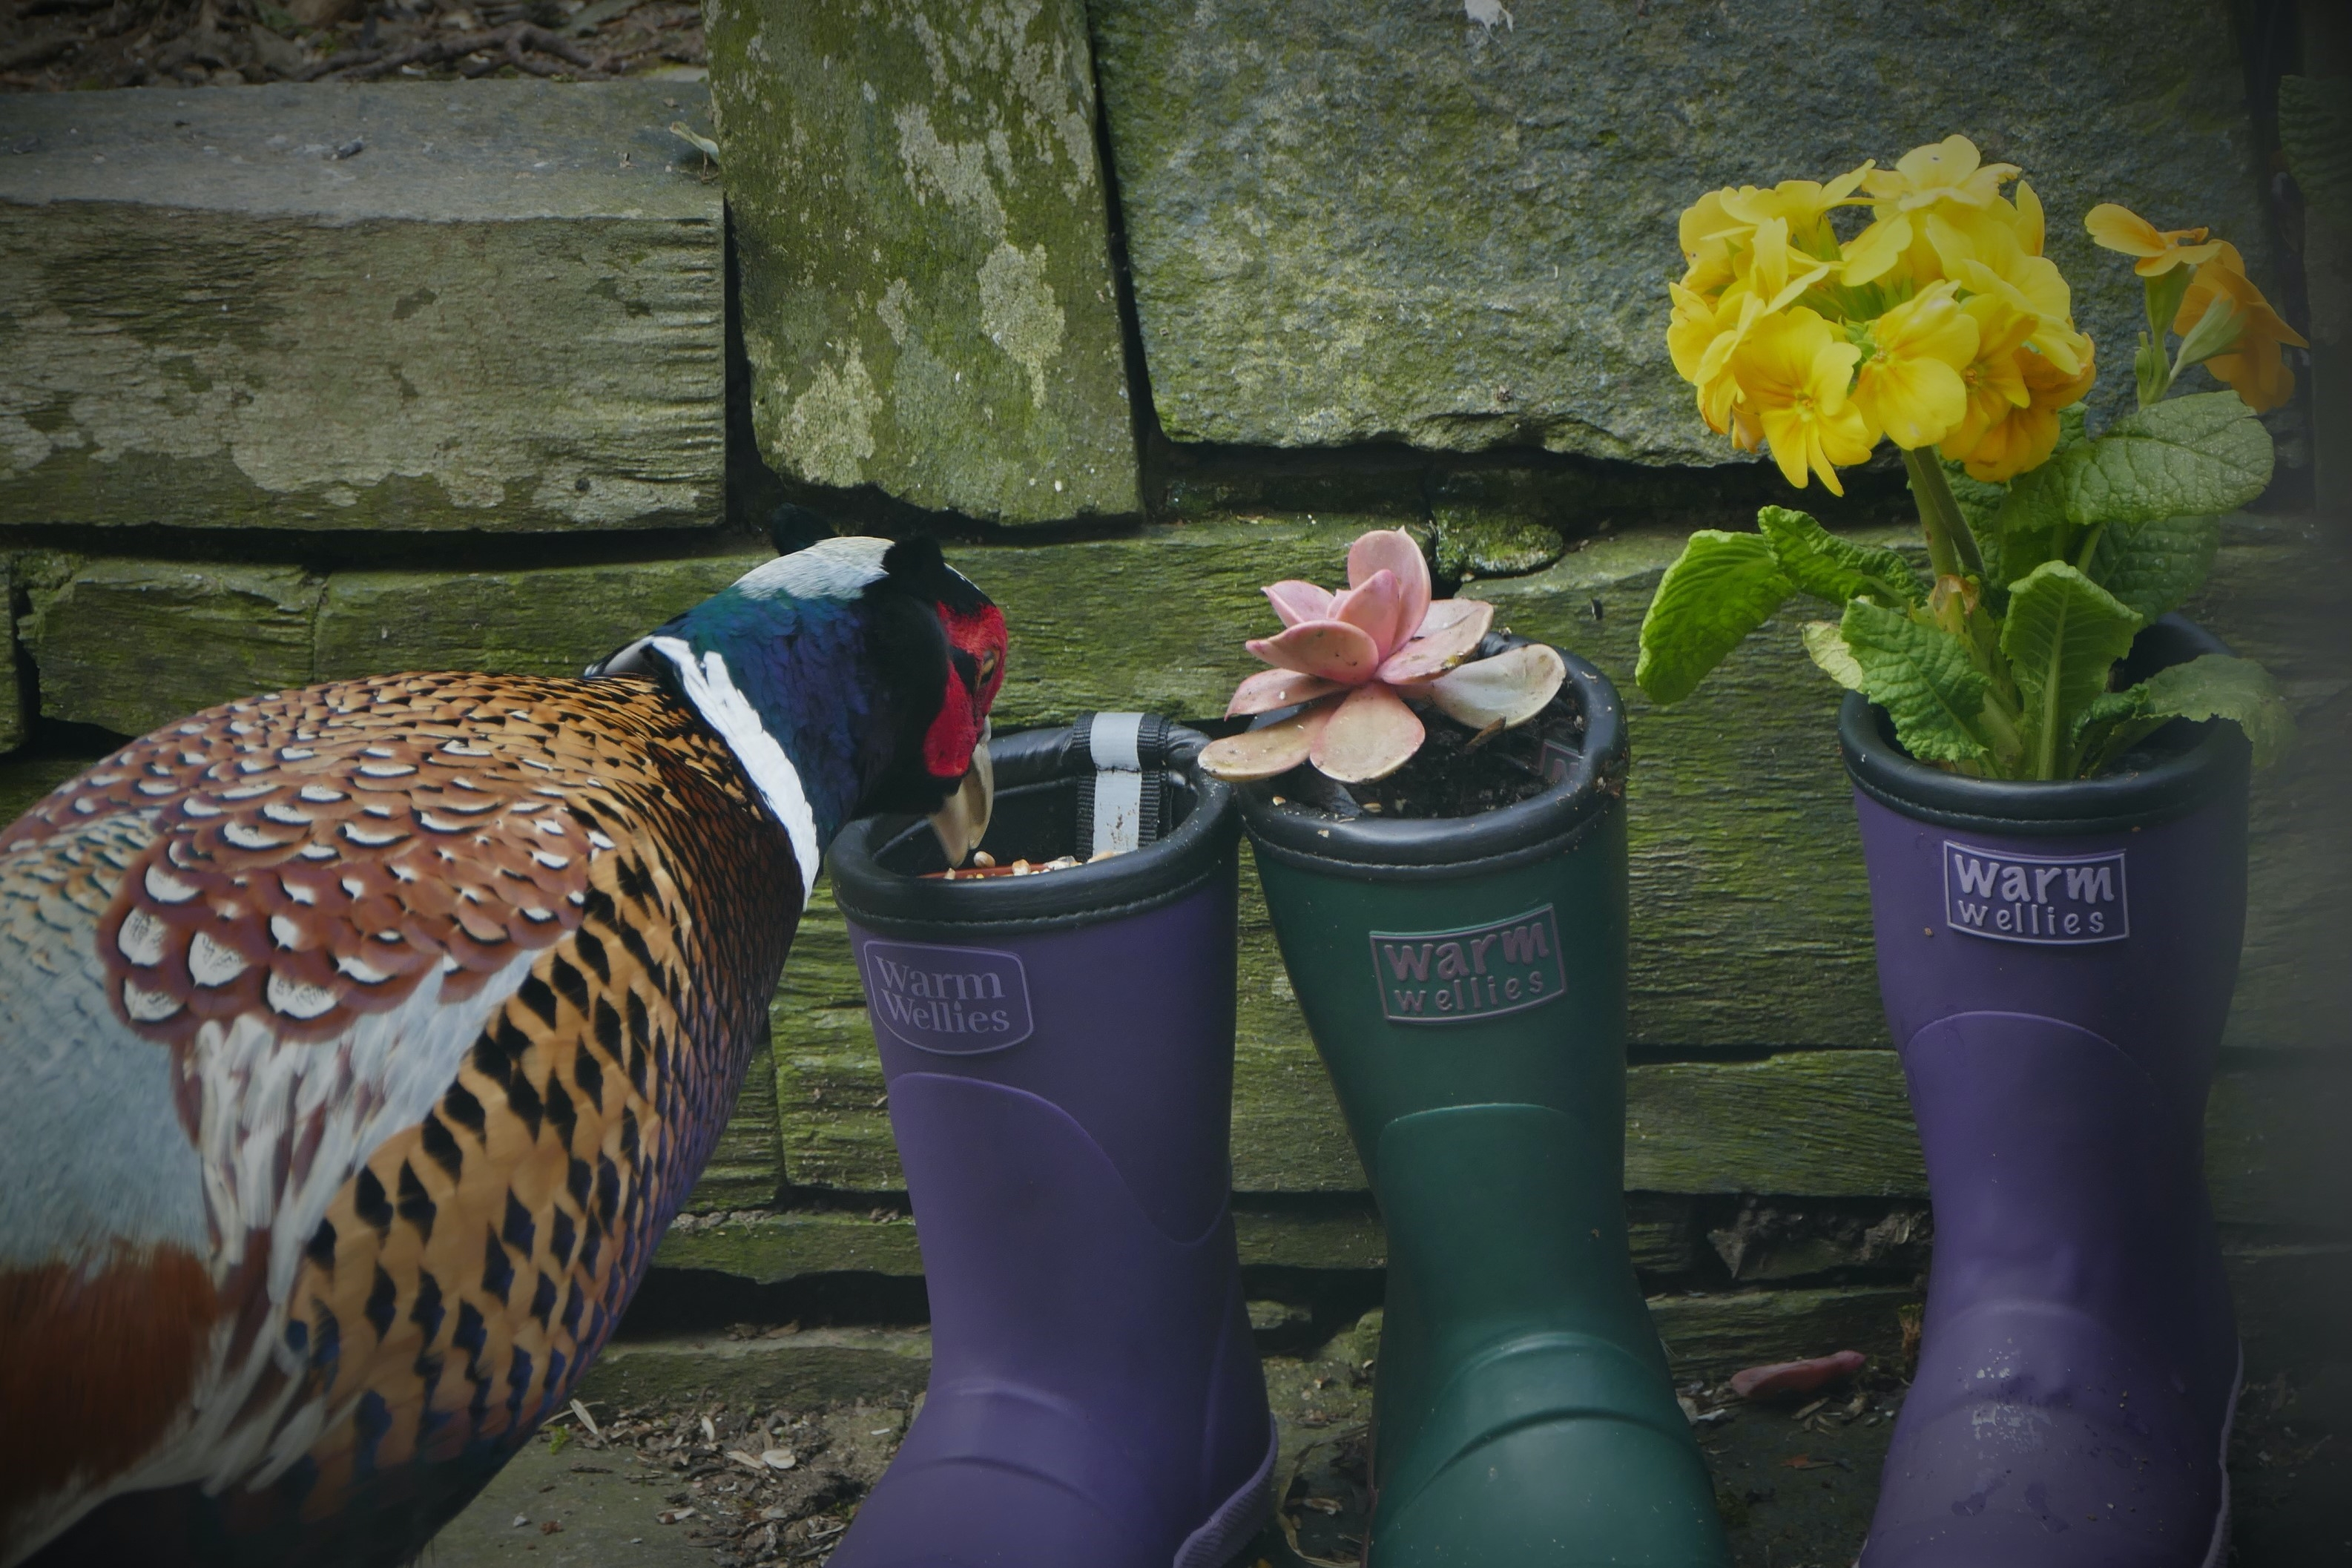 Wellies with flowers in